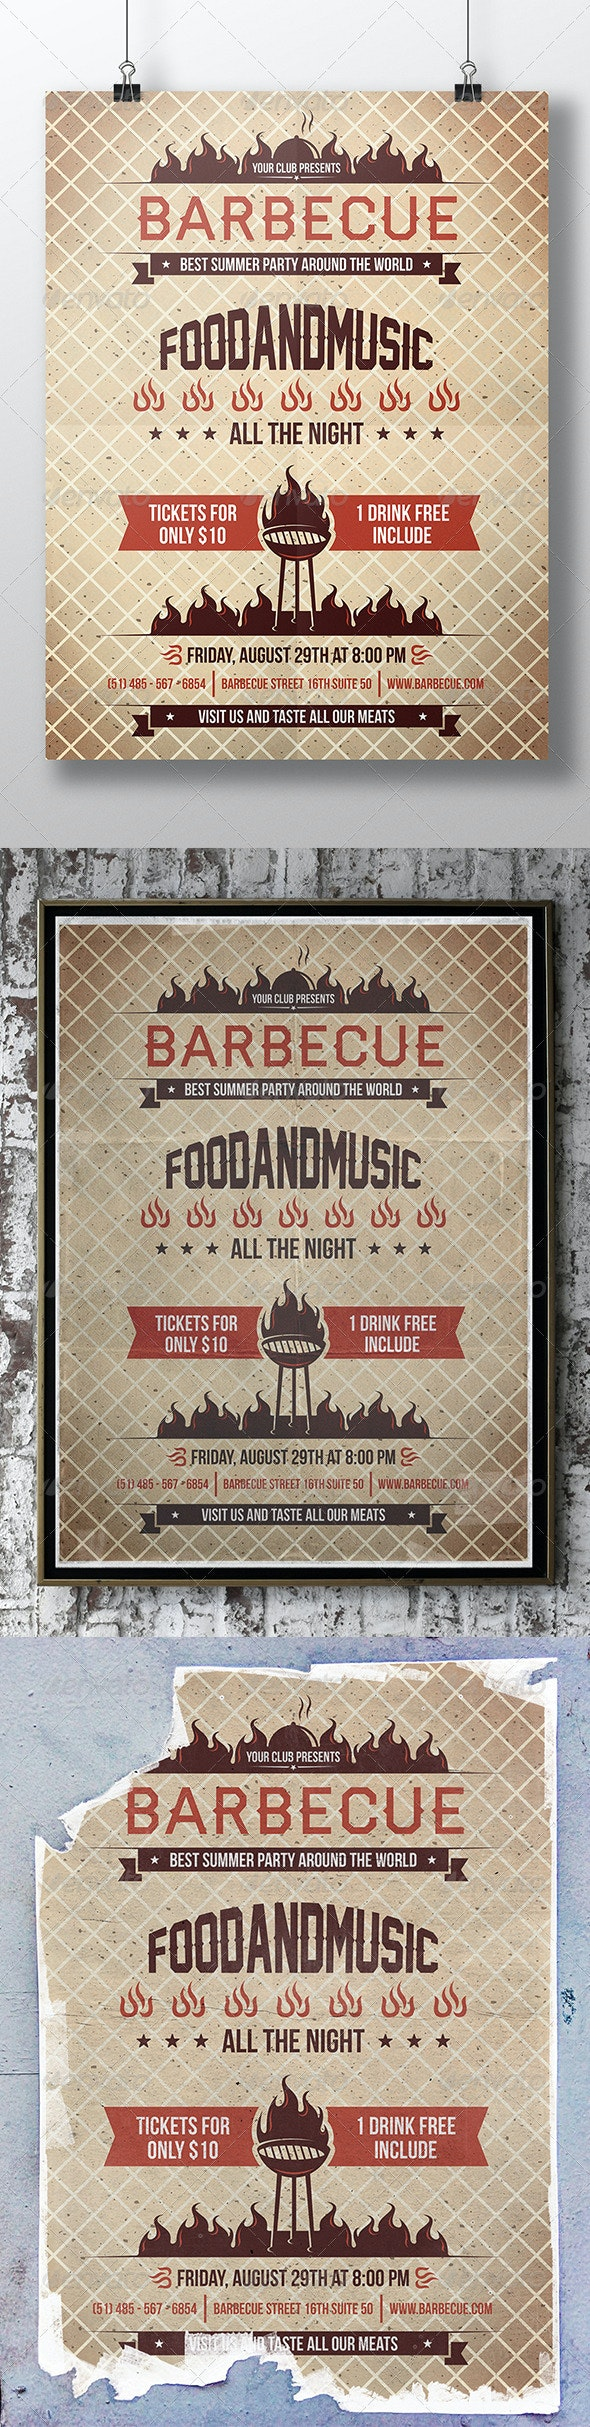 BBQ Hot Summer Party Flyer - Events Flyers